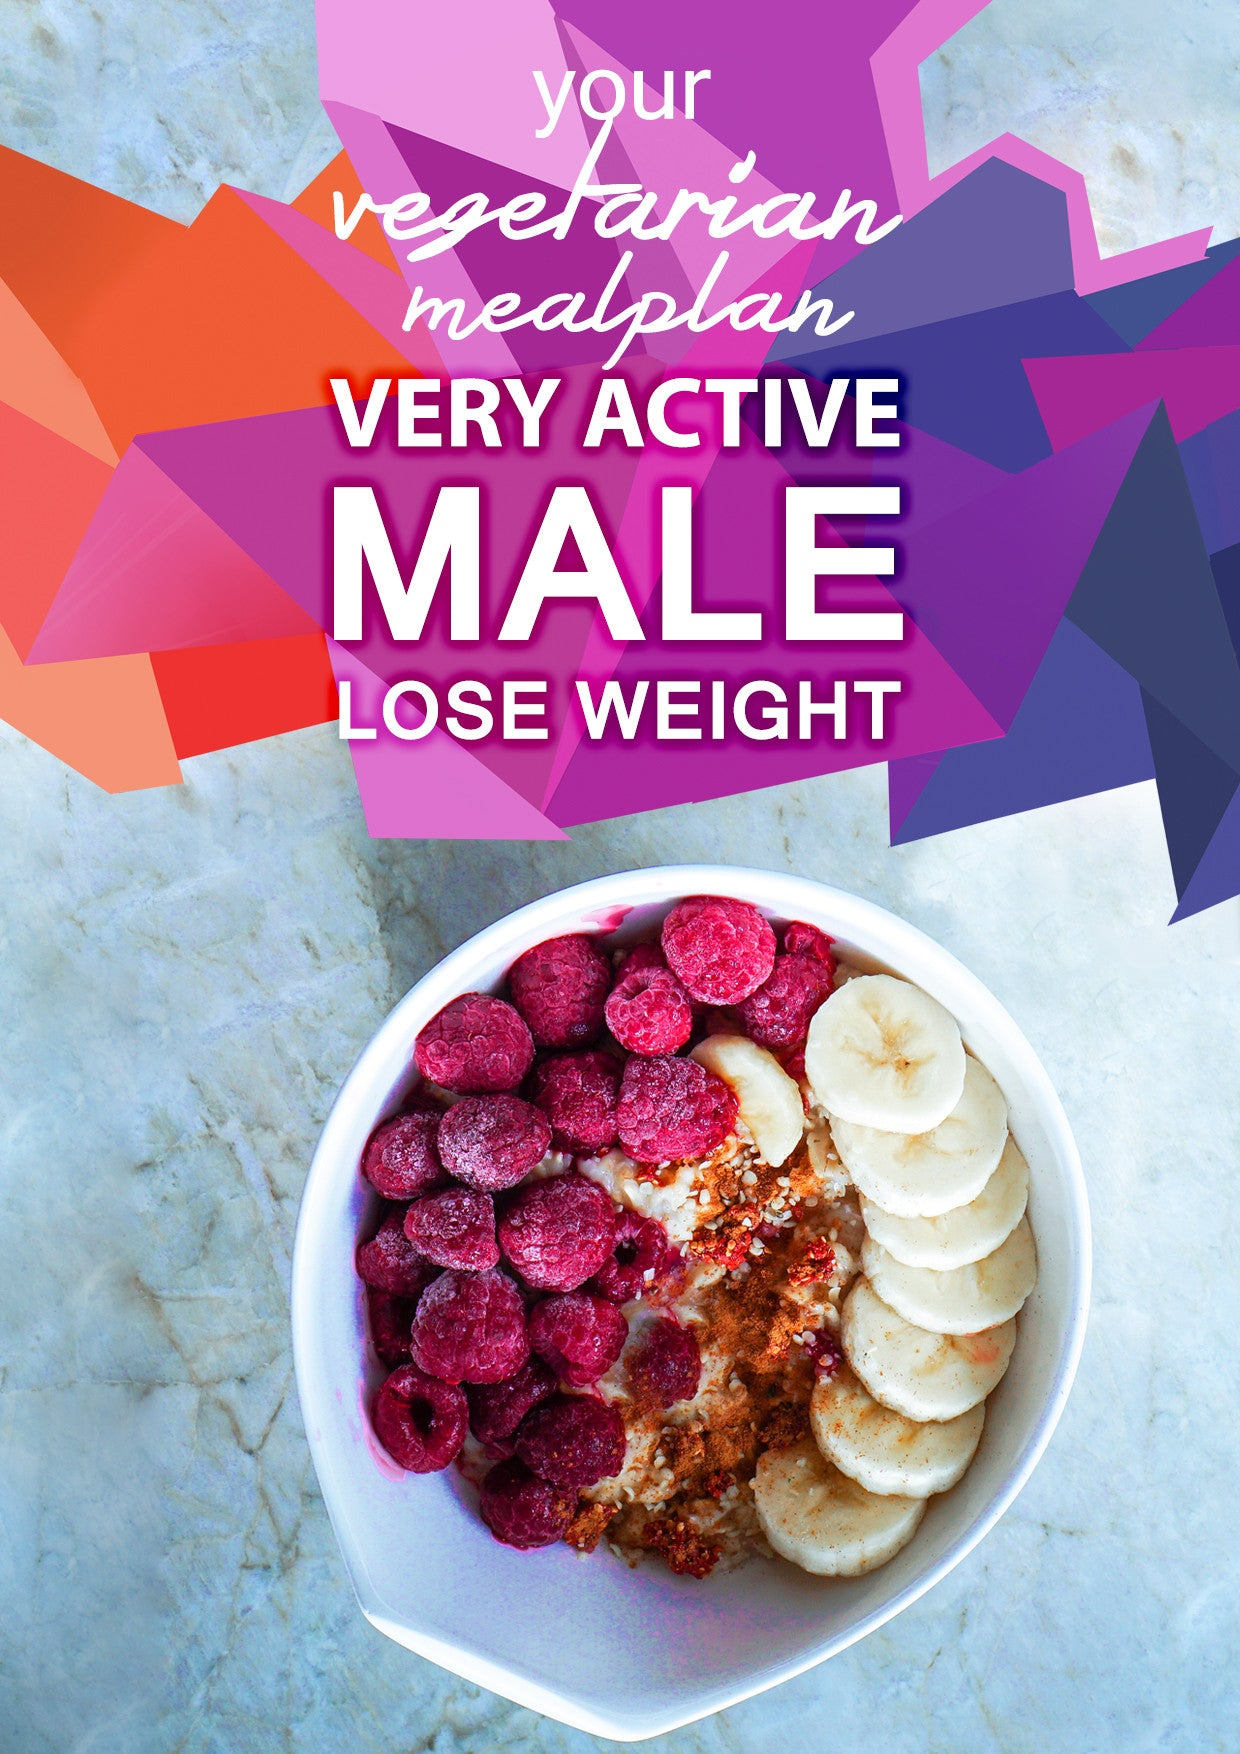 Vegetarian Very Active Male - Lose Weight